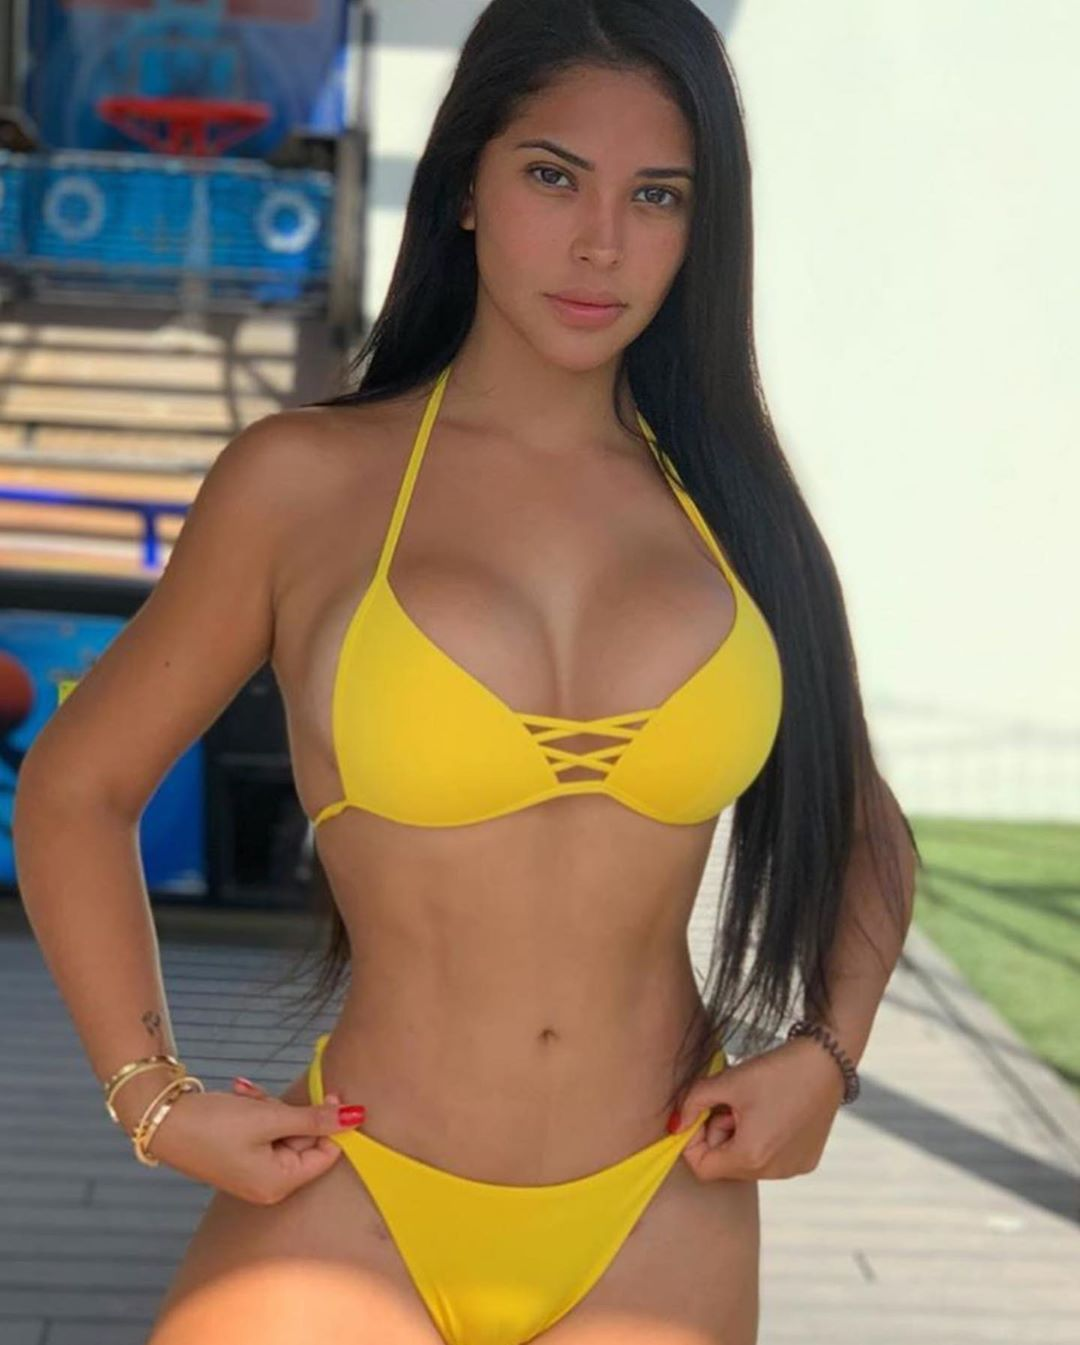 colombia dating